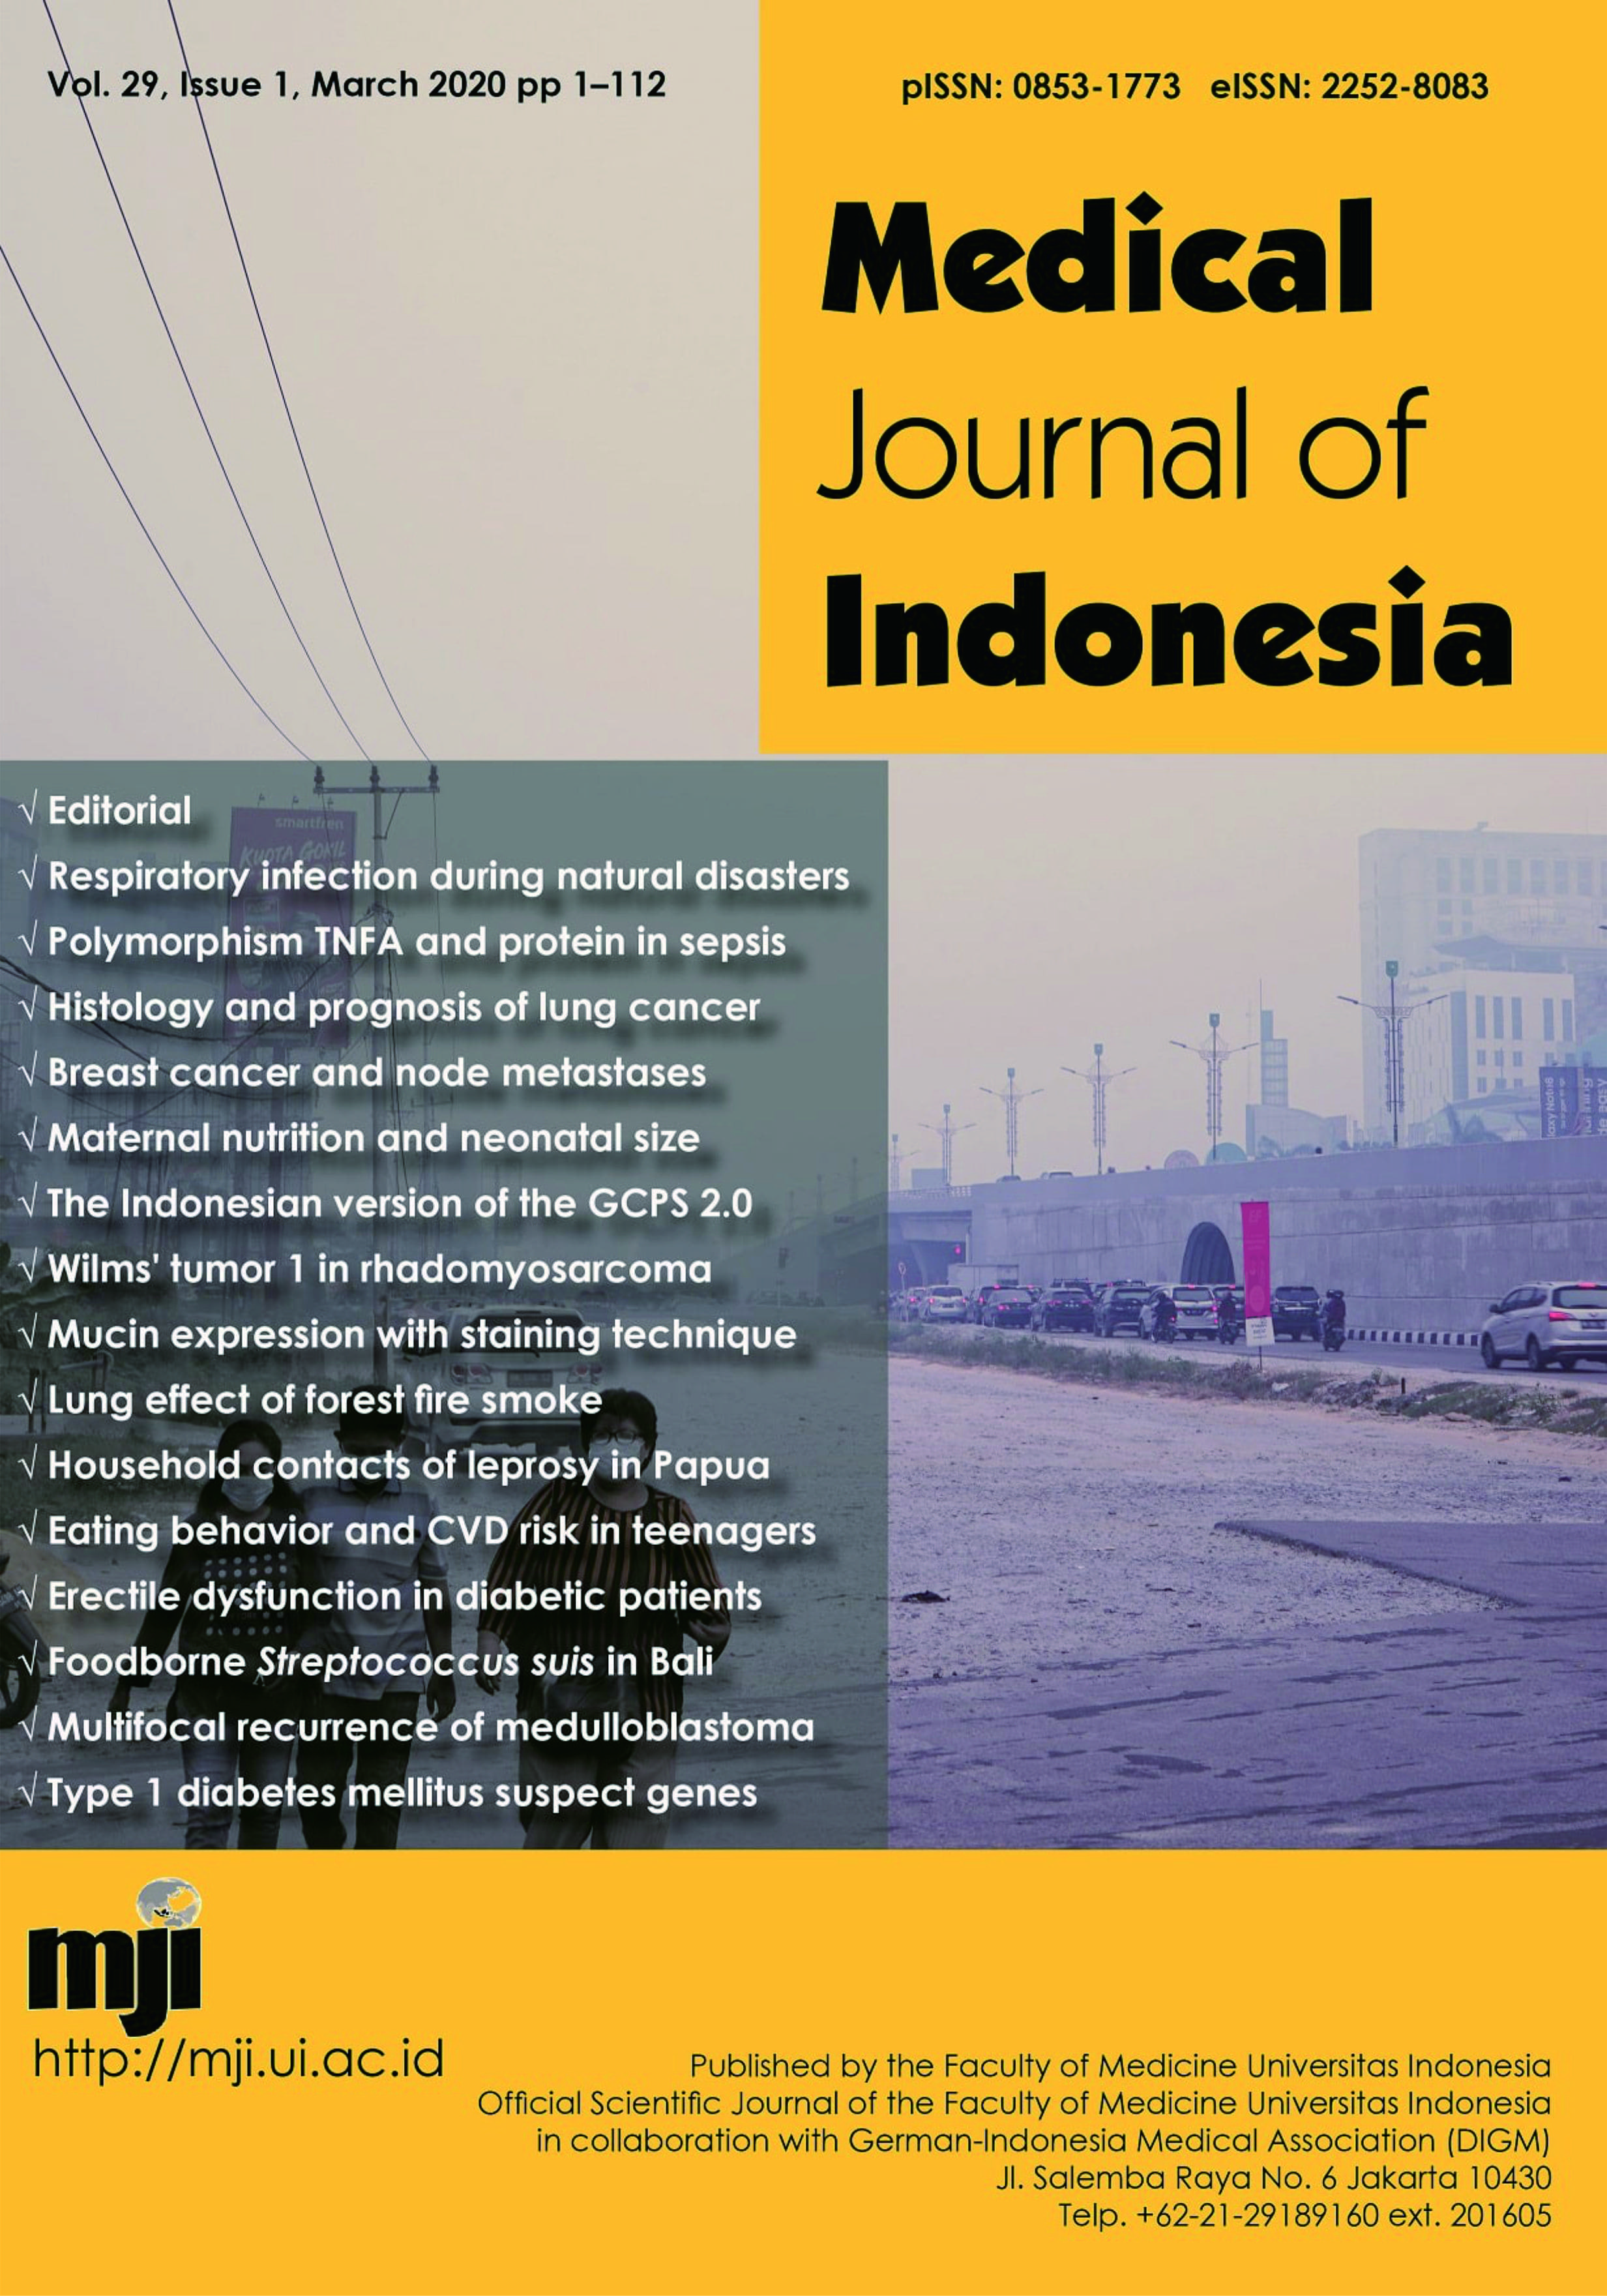 Epidemiology Of Erectile Dysfunction In Men With Diabetes Mellitus A Study In A Primary Health Care Center In Indonesia Medical Journal Of Indonesia